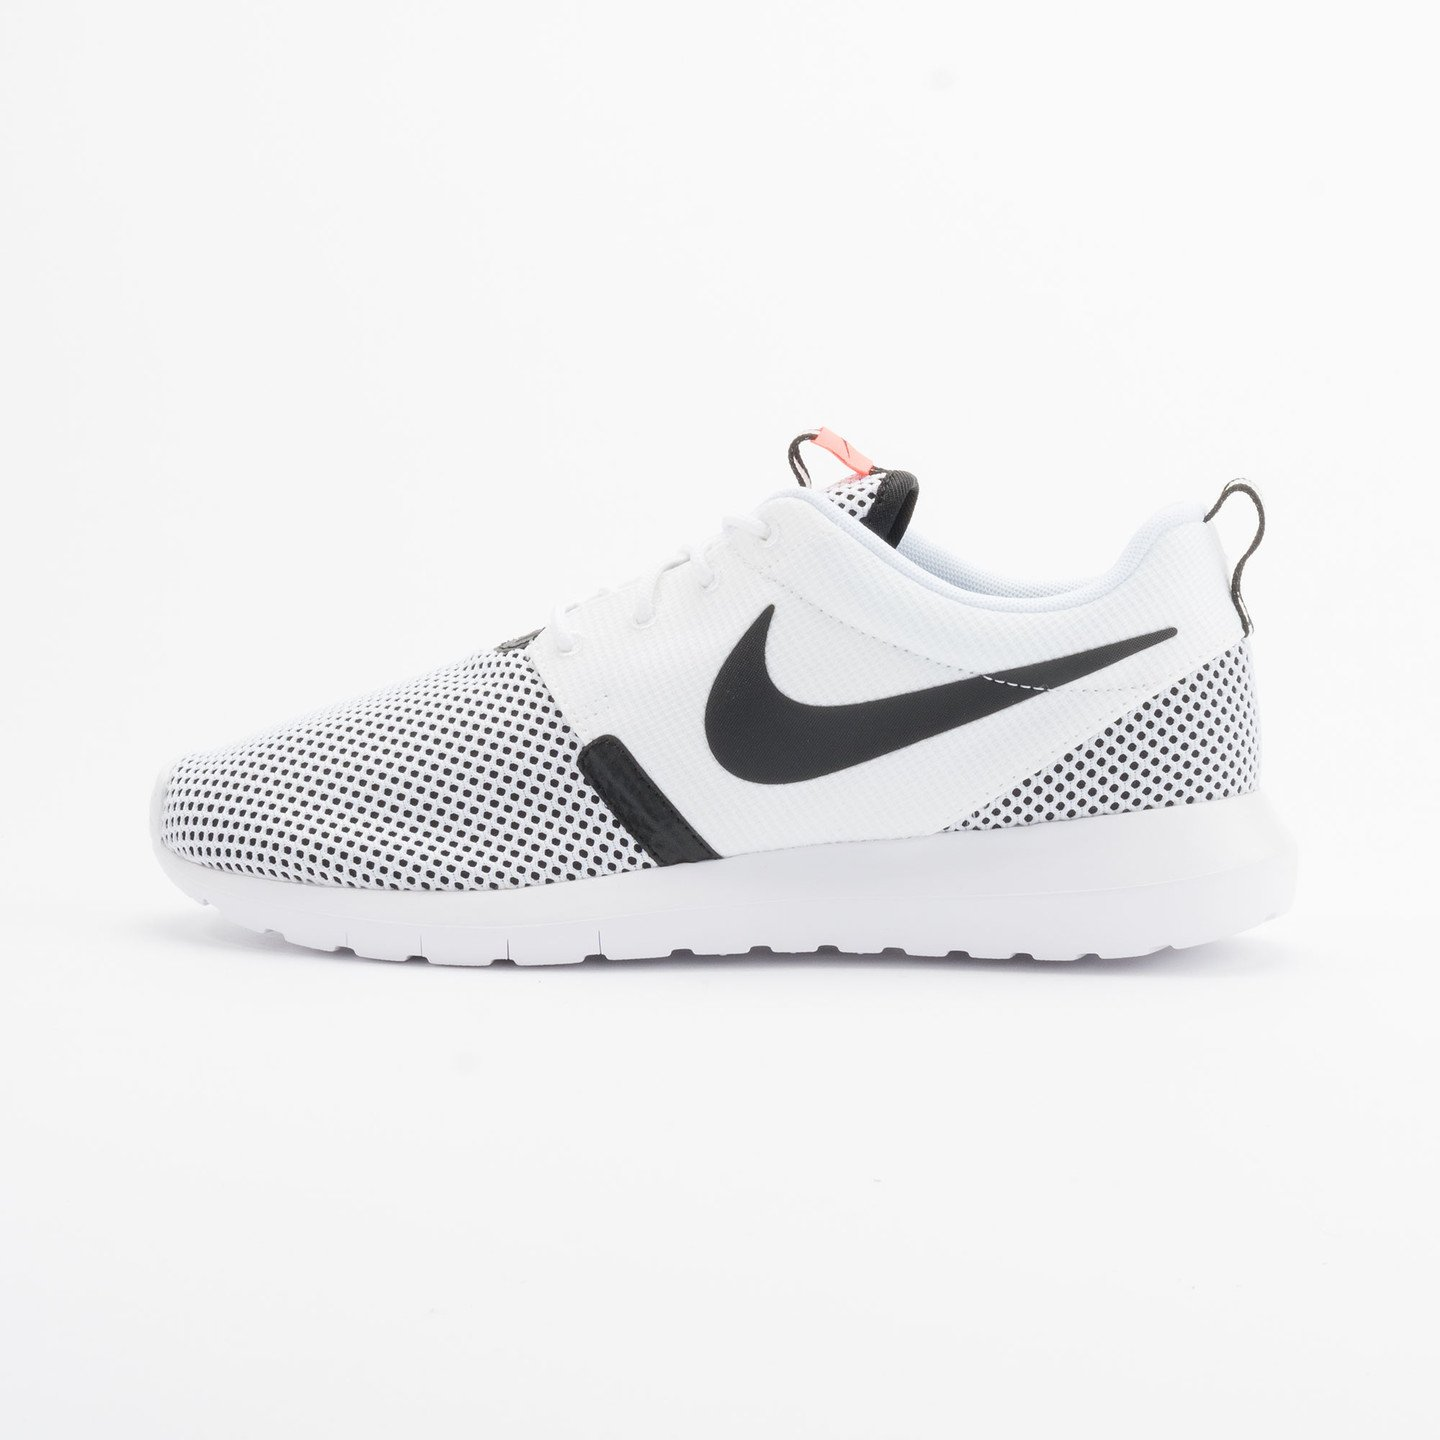 Nike Rosherun NM BR White/White-Black-Hot Lava 644425-100-40